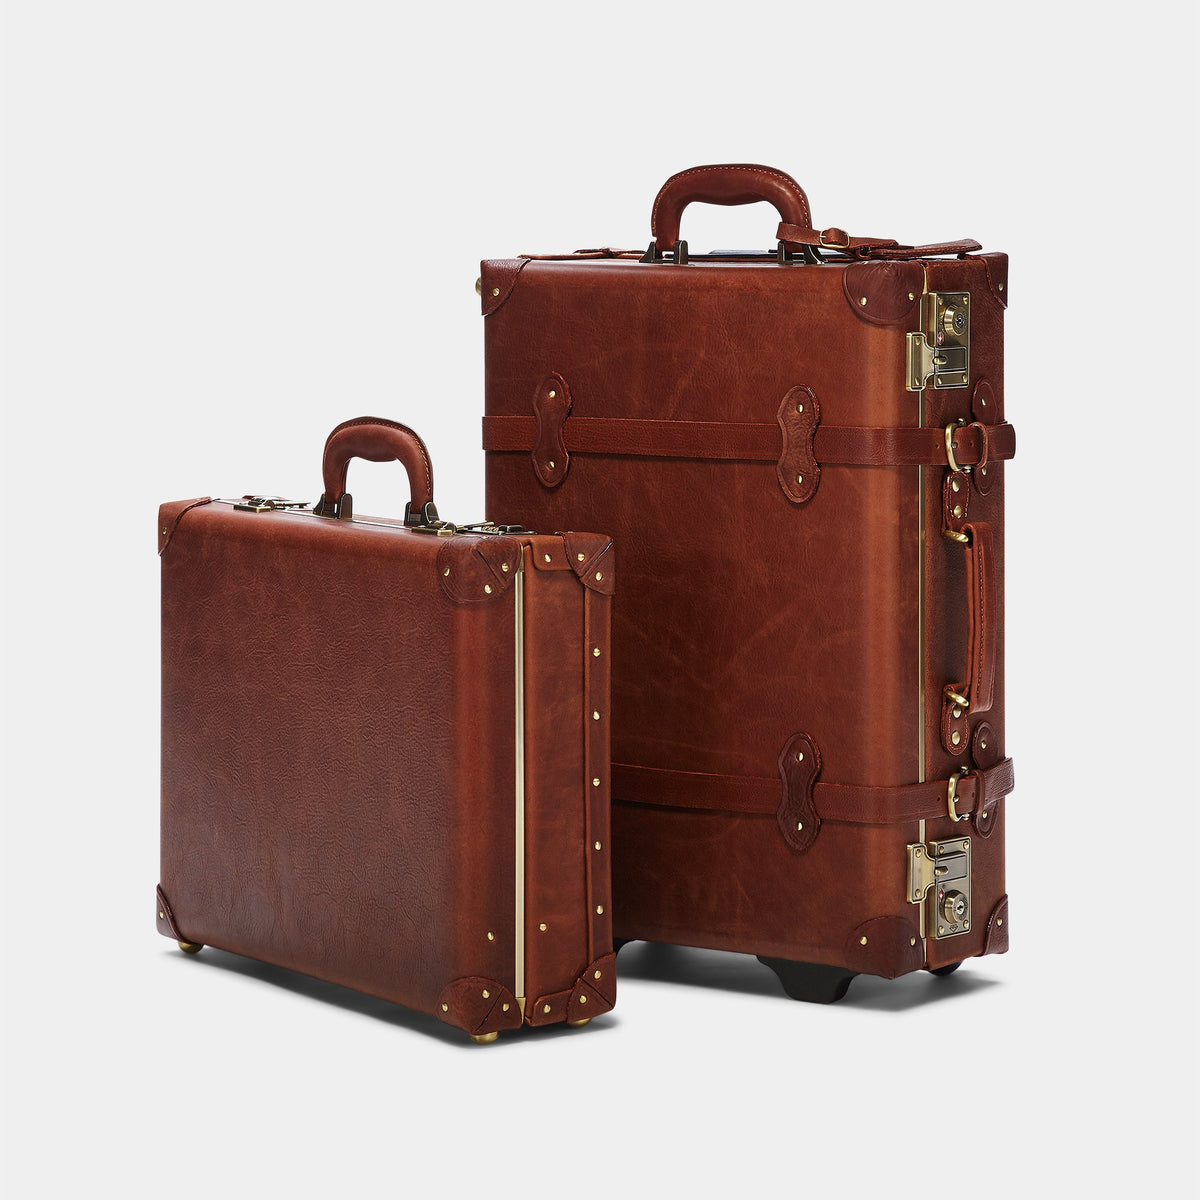 The Pioneer Executive Briefcase - Vintage-Style Leather Briefcase - Alongside the Pioneer Carryon